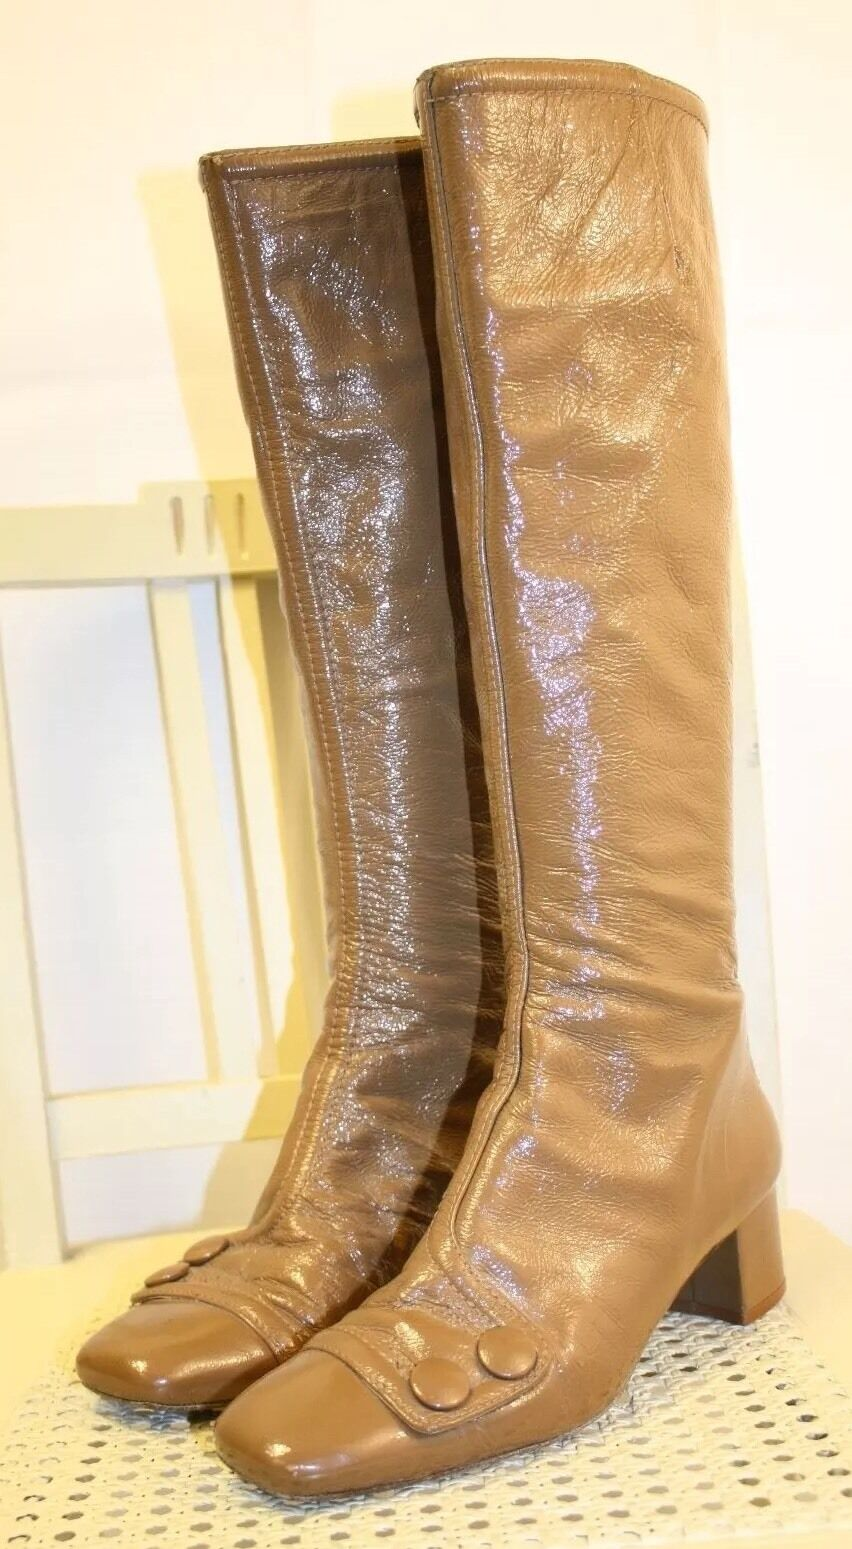 NANETTE LEPORE Tan Patent Leather 70s Style Knee High Zip Up Boots 6M Spain!!